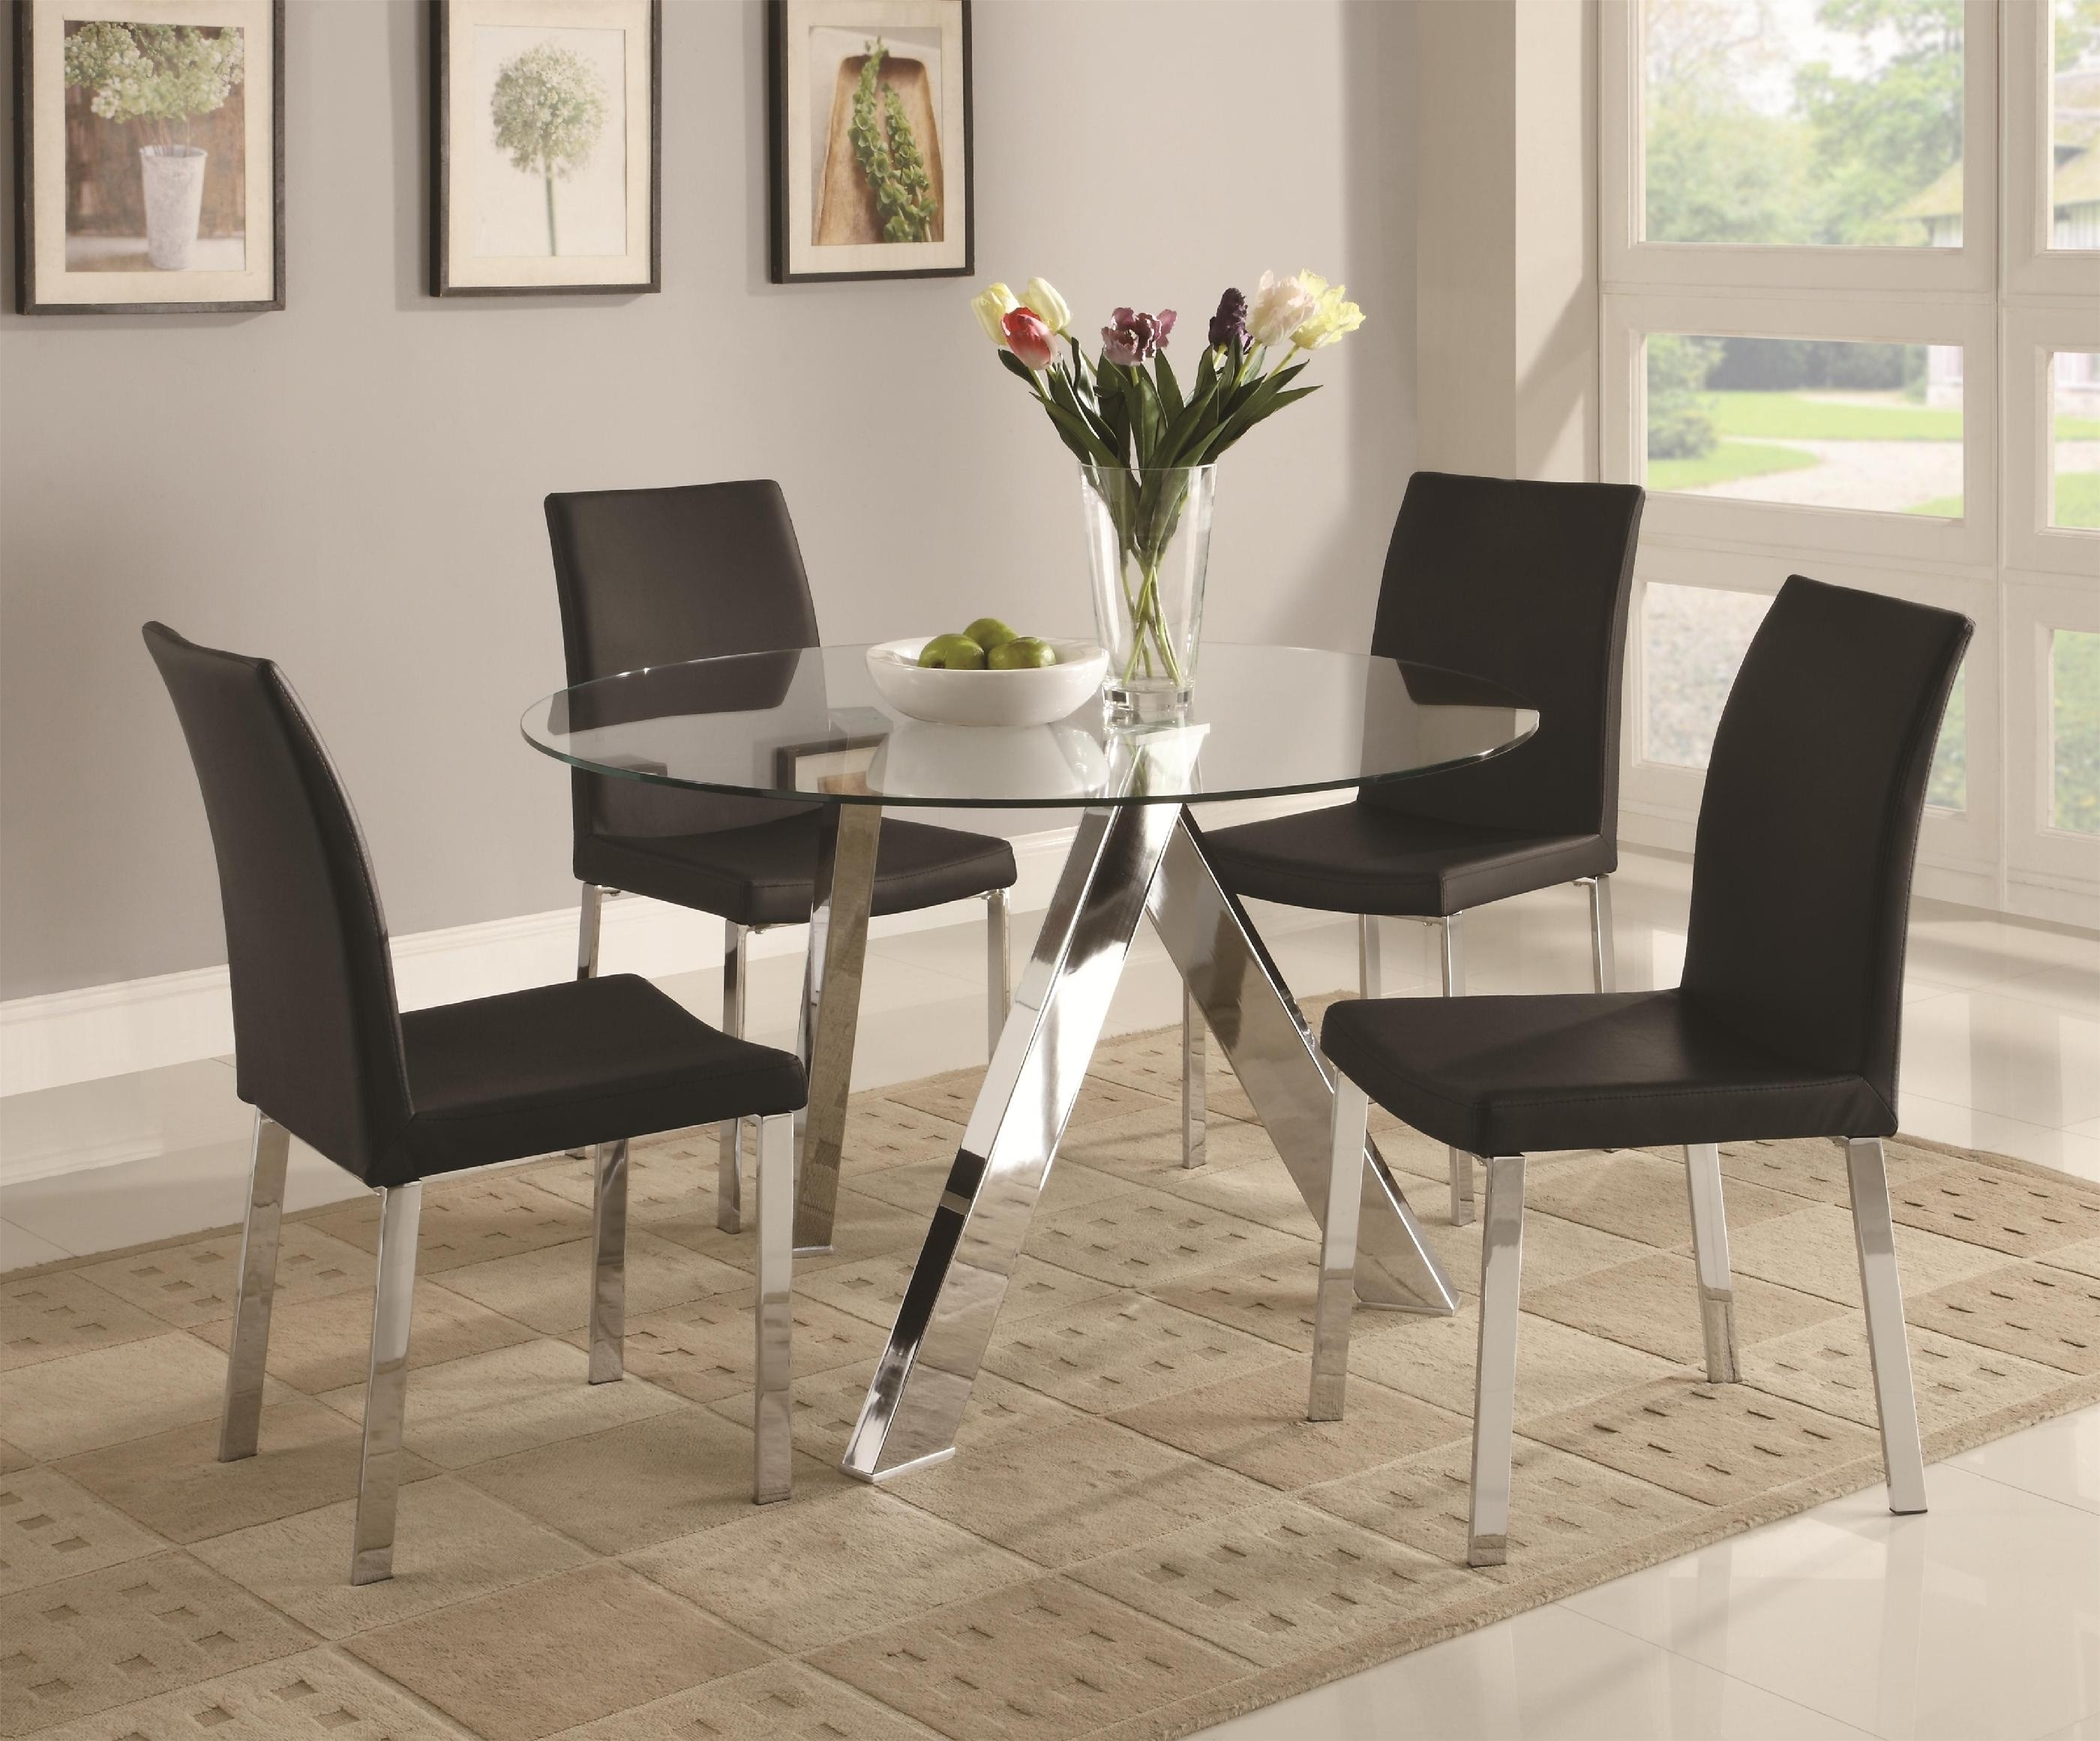 Fashionable Perth Glass Dining Tables Inside Dining Room. Round Glass Top Dining Table (View 5 of 25)